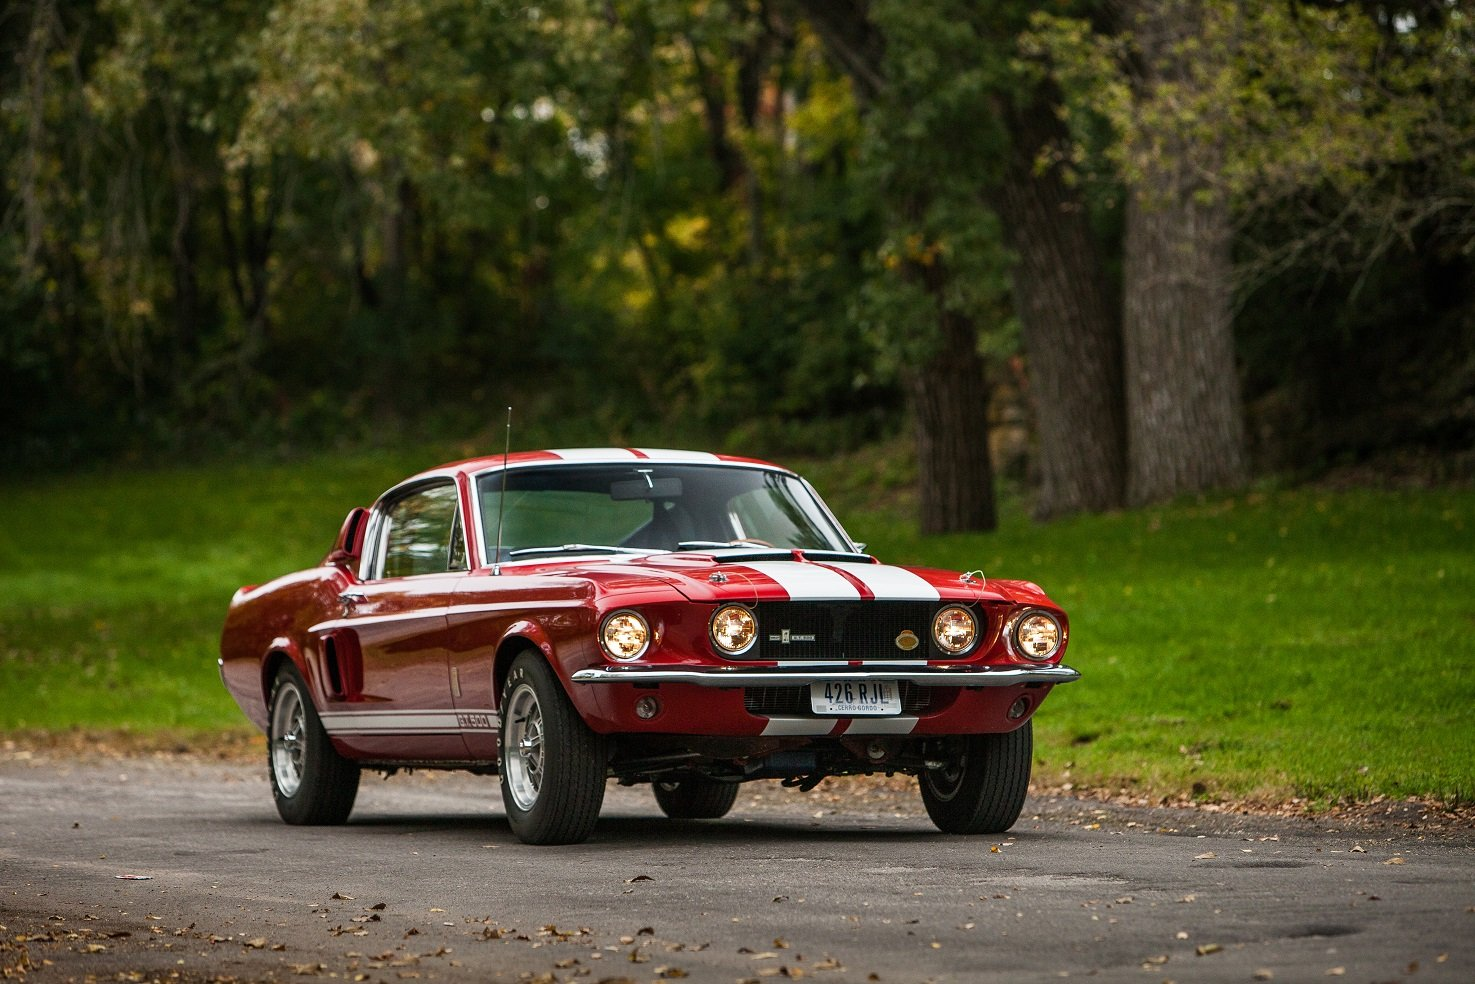 1967 shelby gt500 with lemans stripes option classic cars wallpaper 1475x984 682834 wallpaperup